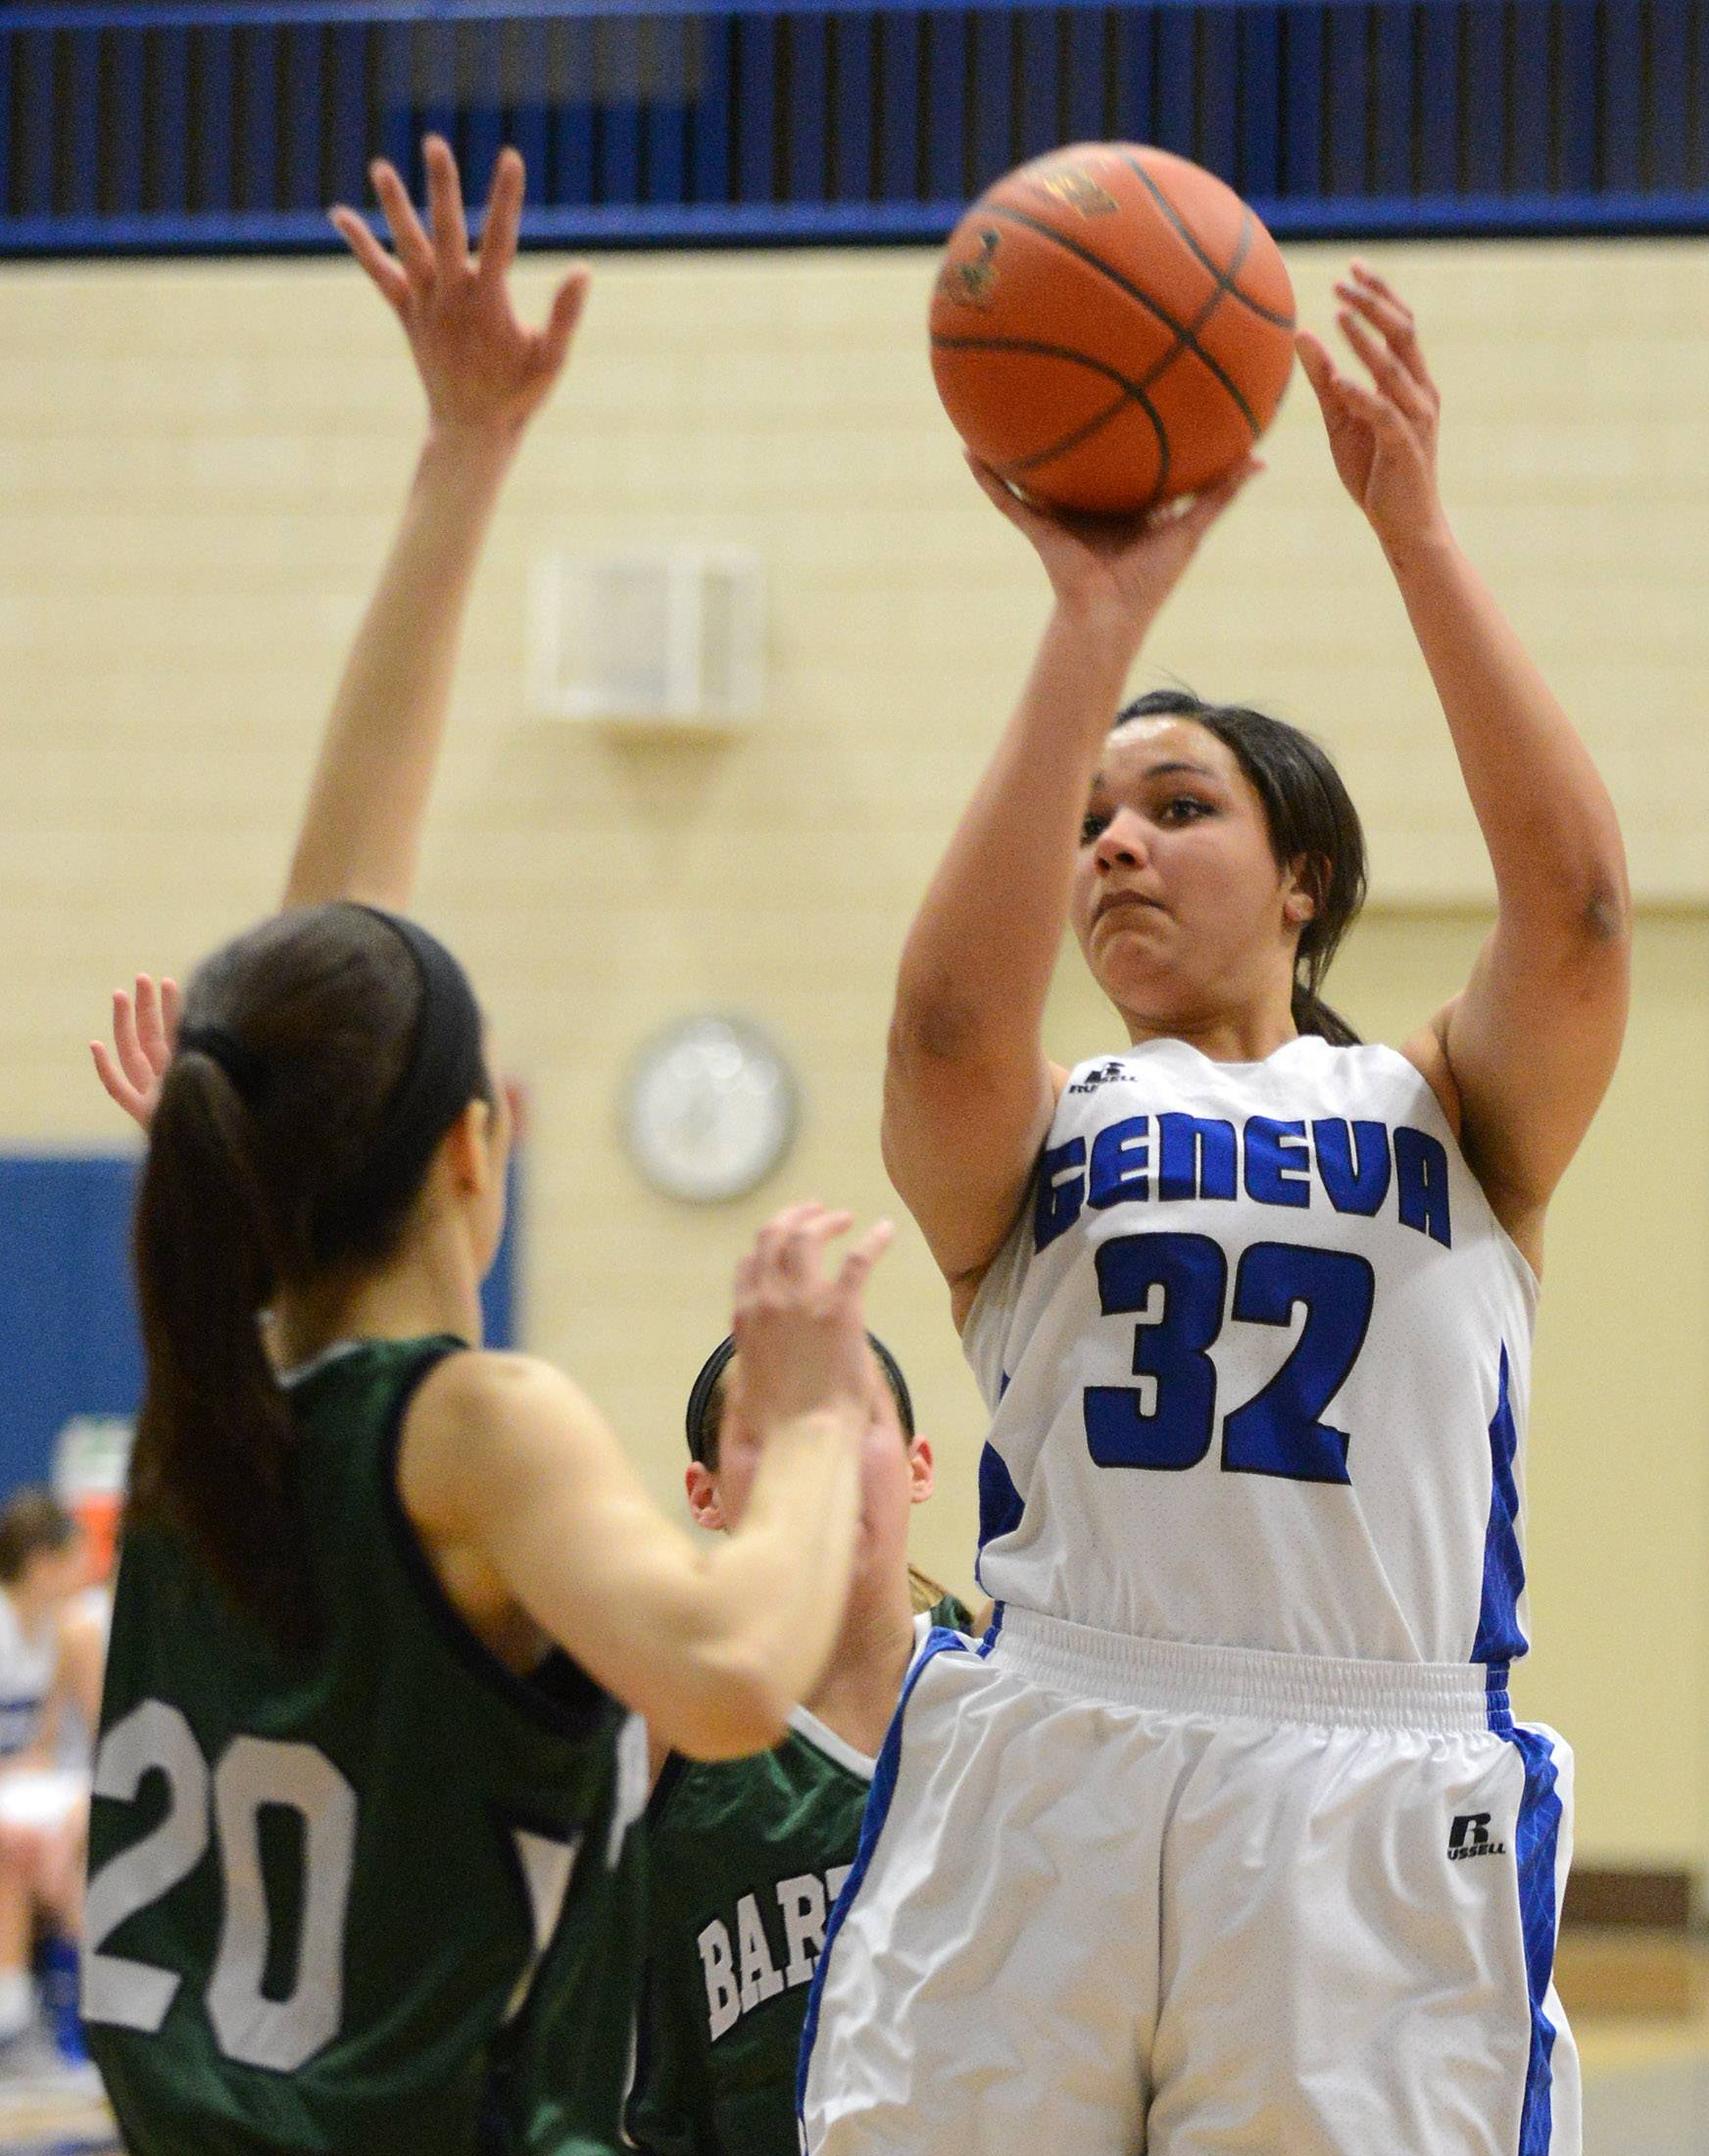 Rick West/rwest@dailyherald.comGeneva's Sidney Santos (32) shoots and scores over Bartlett's Elizabeth Arco (20) during Thursday's game in Geneva.